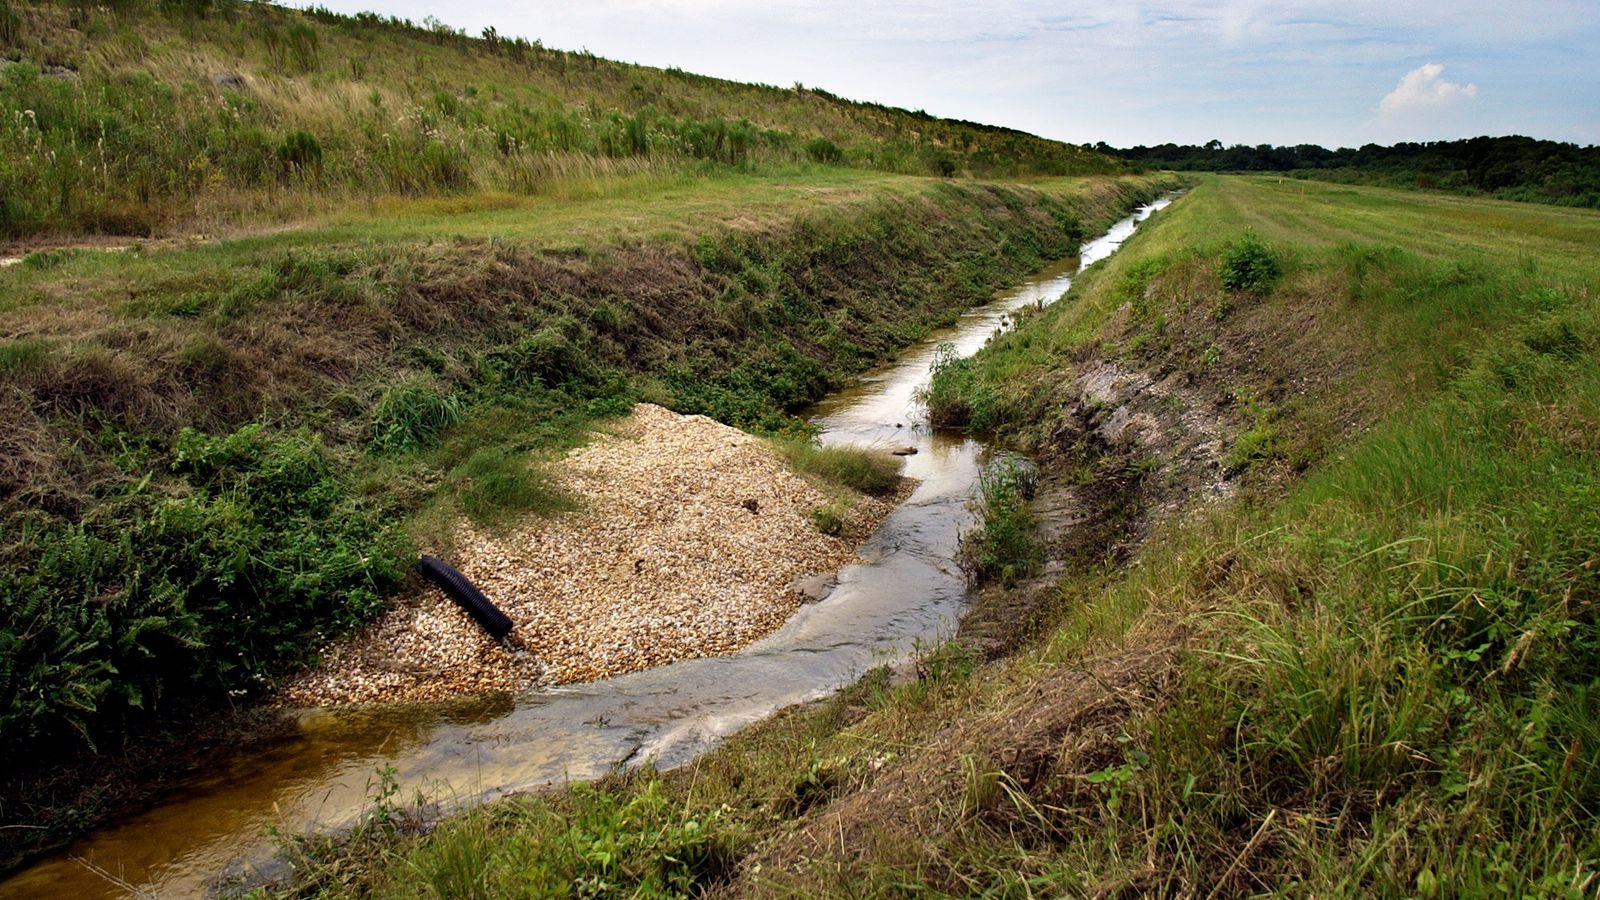 The earthen embankment containing the Piney Point waste has suffered from structural problems requiring patching with gravel. (2003, Times Archive)